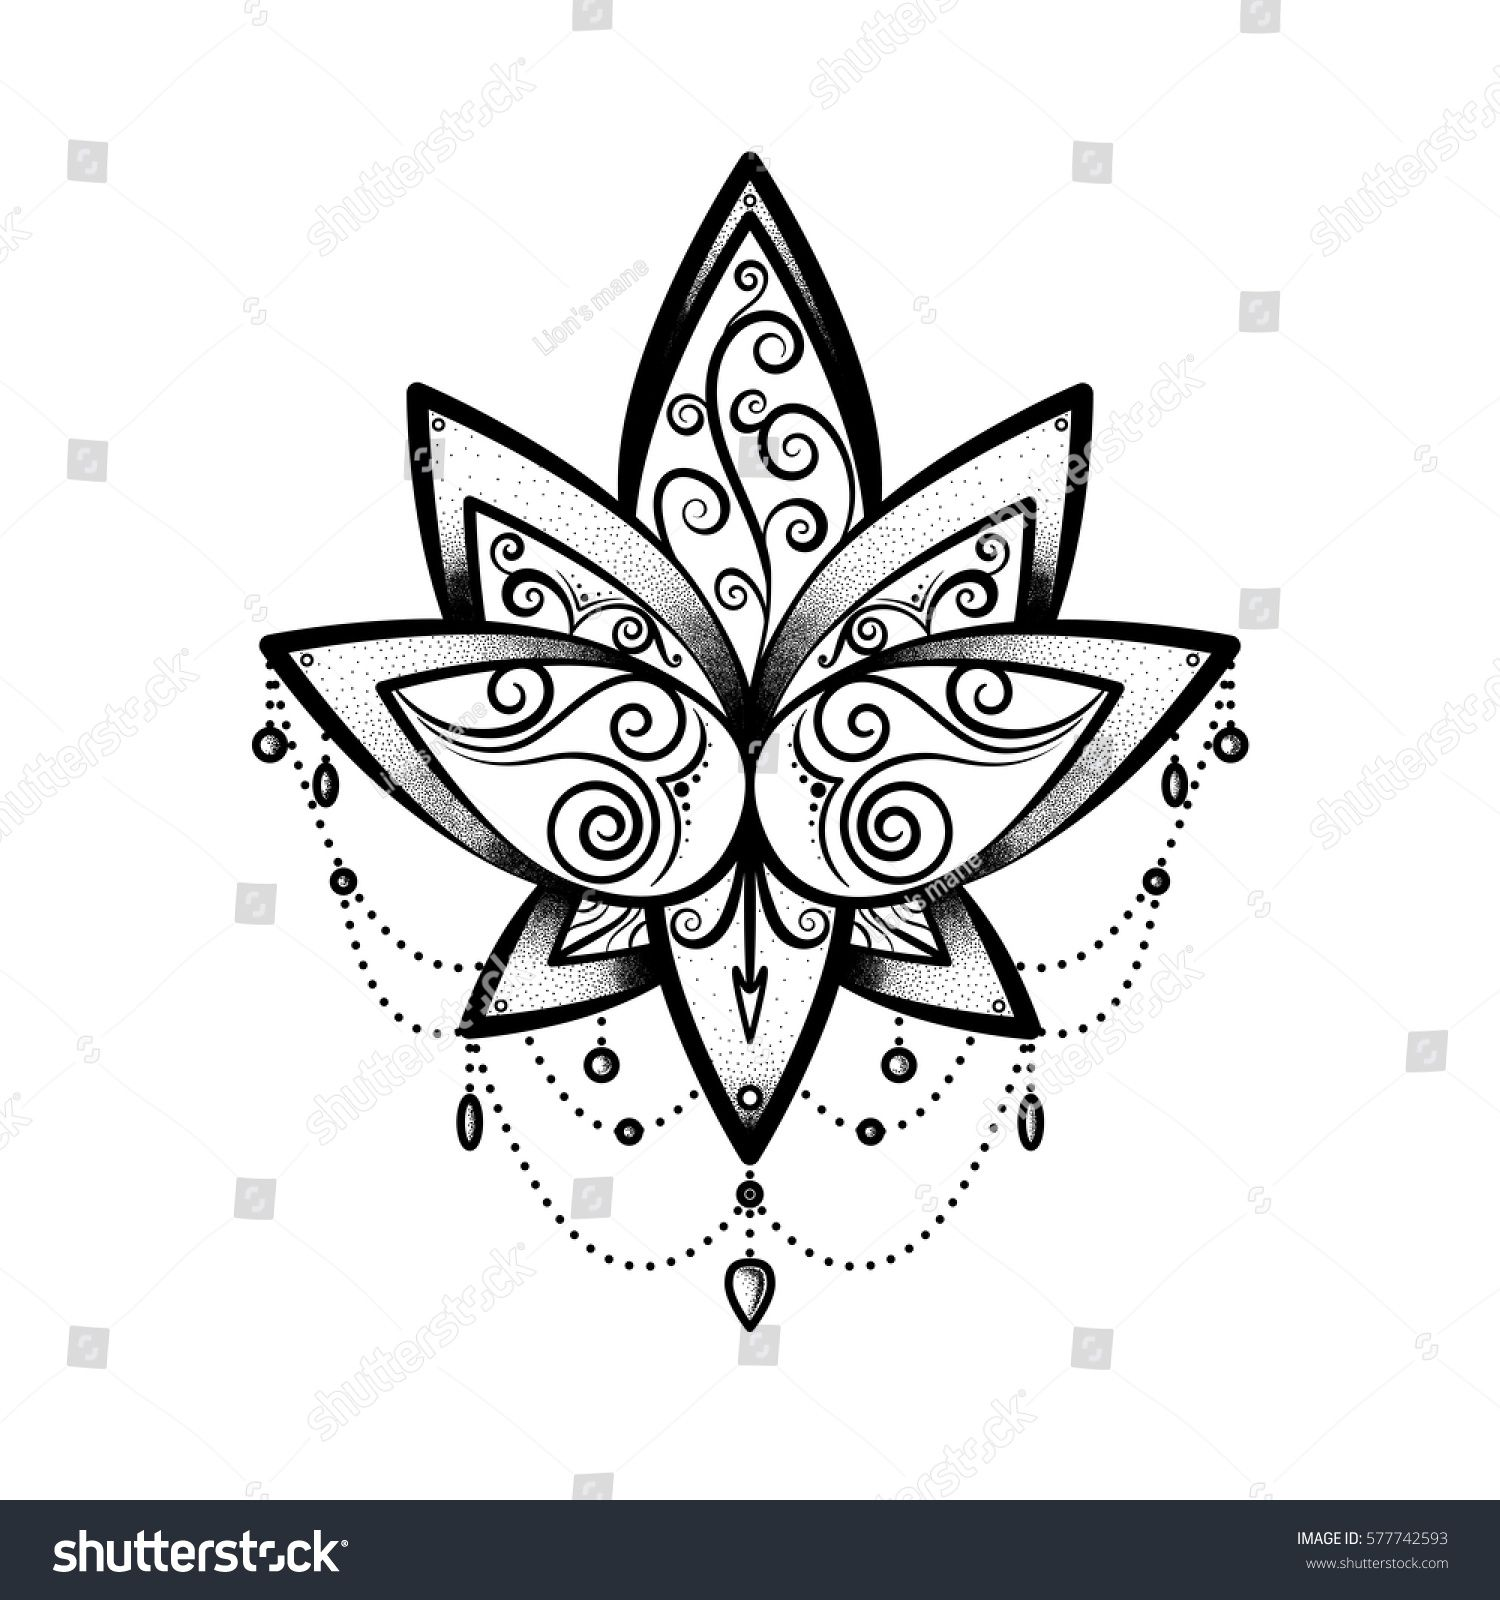 Vector Ornamental Lotus Flower Ethnic Art Black Hand Drawn